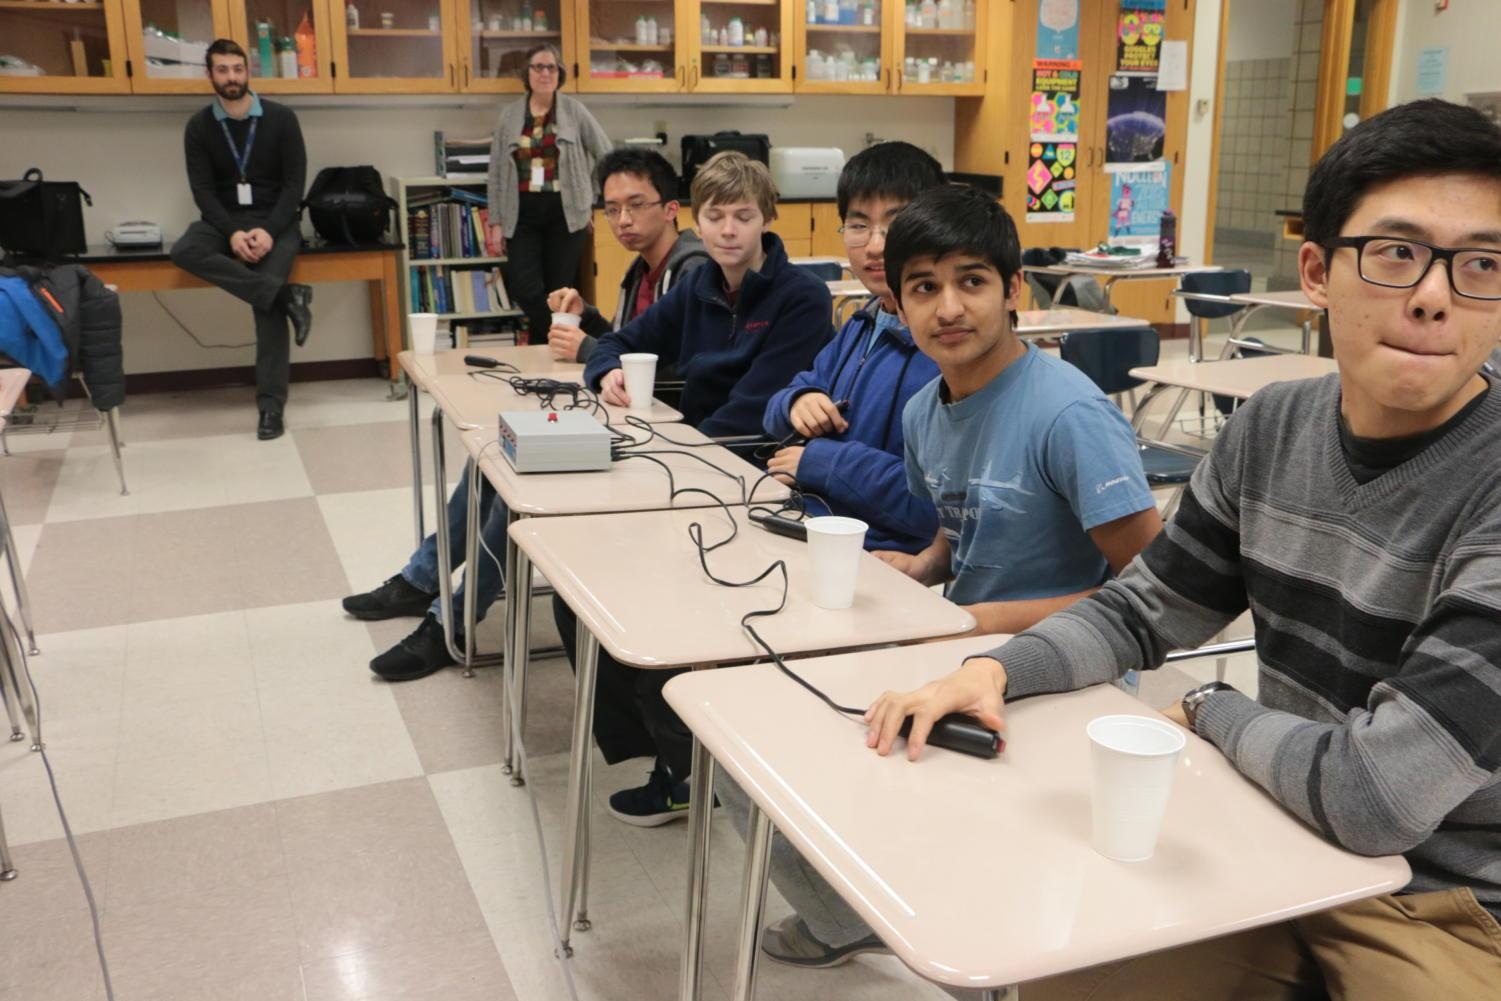 Justin Yu (front), Quiz Bowl club founder, team captain and junior, and prospective members prepare to answer a practice question during the club call-out meeting on Tuesday, March 6. According to Yu, the club hopes to prepare two teams in order to attend one invitational or competition this year.